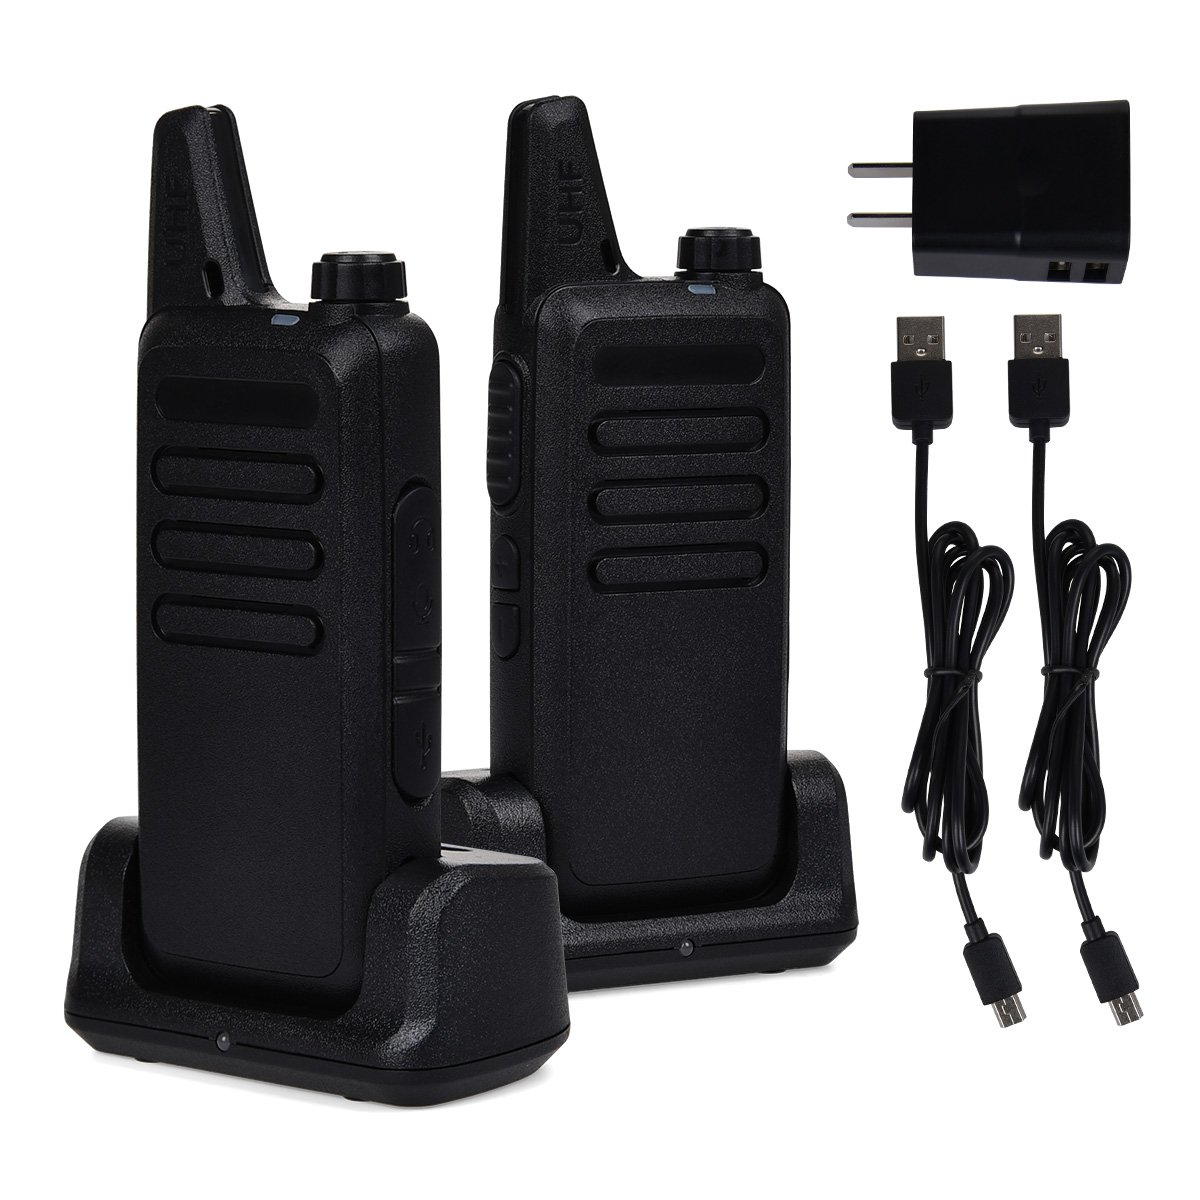 Swiftion Rechargeable Walkie Talkies for Hunting Long Range 2 Way Radio Walky Talky Rechargable Professional interphone for Trave for Police 16 Channel 2 Way Radios with Charger (Pack of 2) by Swiftion (Image #7)